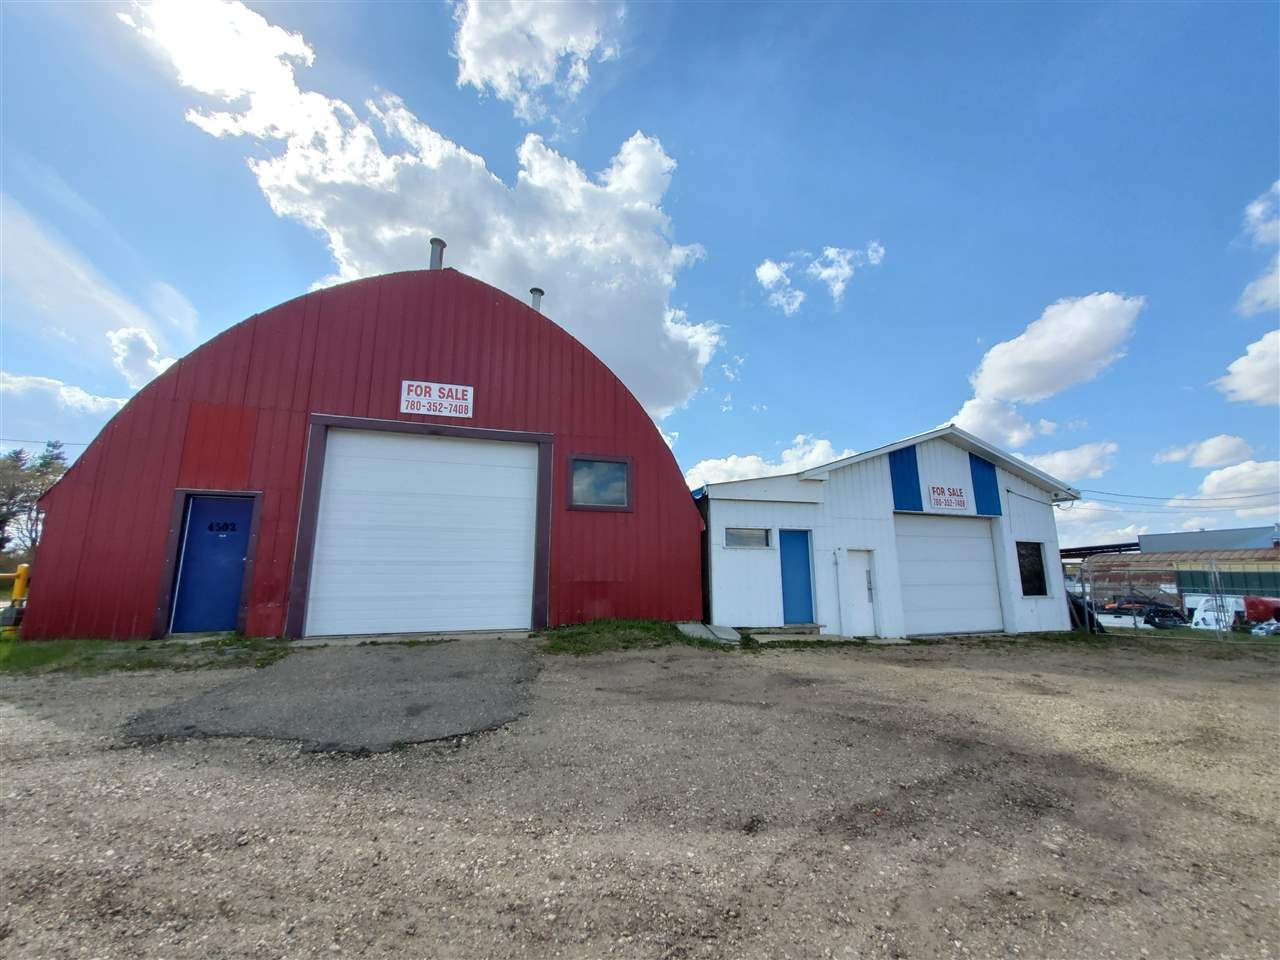 Main Photo: 4502 57 Street: Wetaskiwin Industrial for sale : MLS®# E4190211